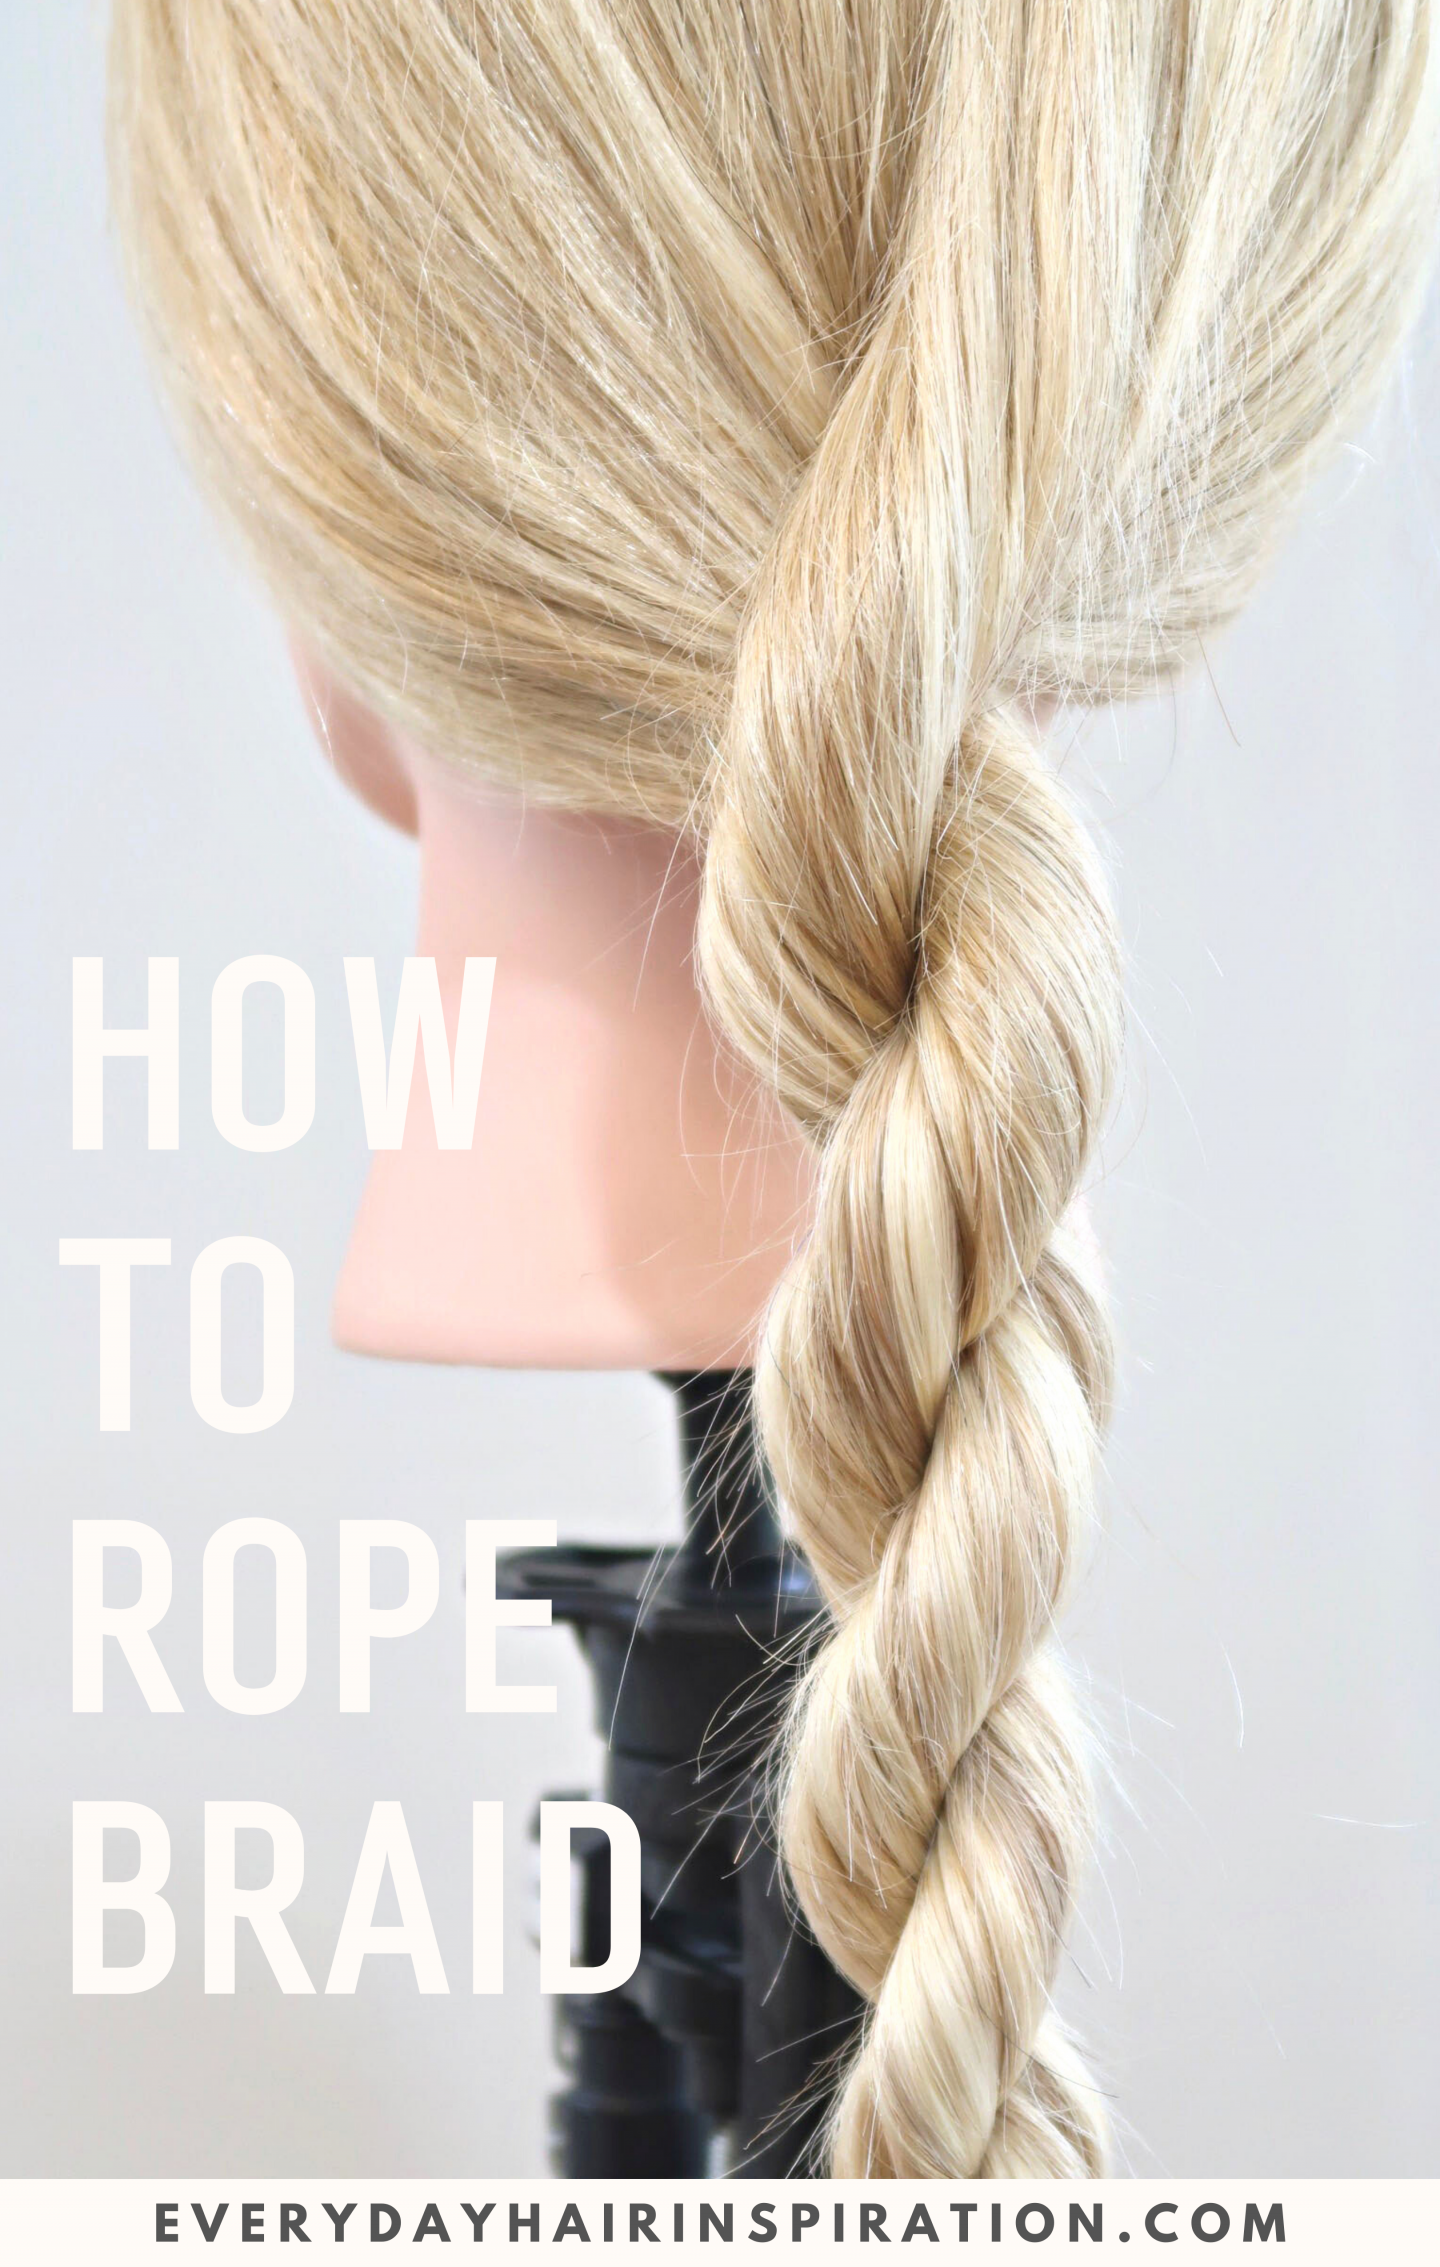 """Picture of a rope braid with text saying """"How to rope braid""""."""